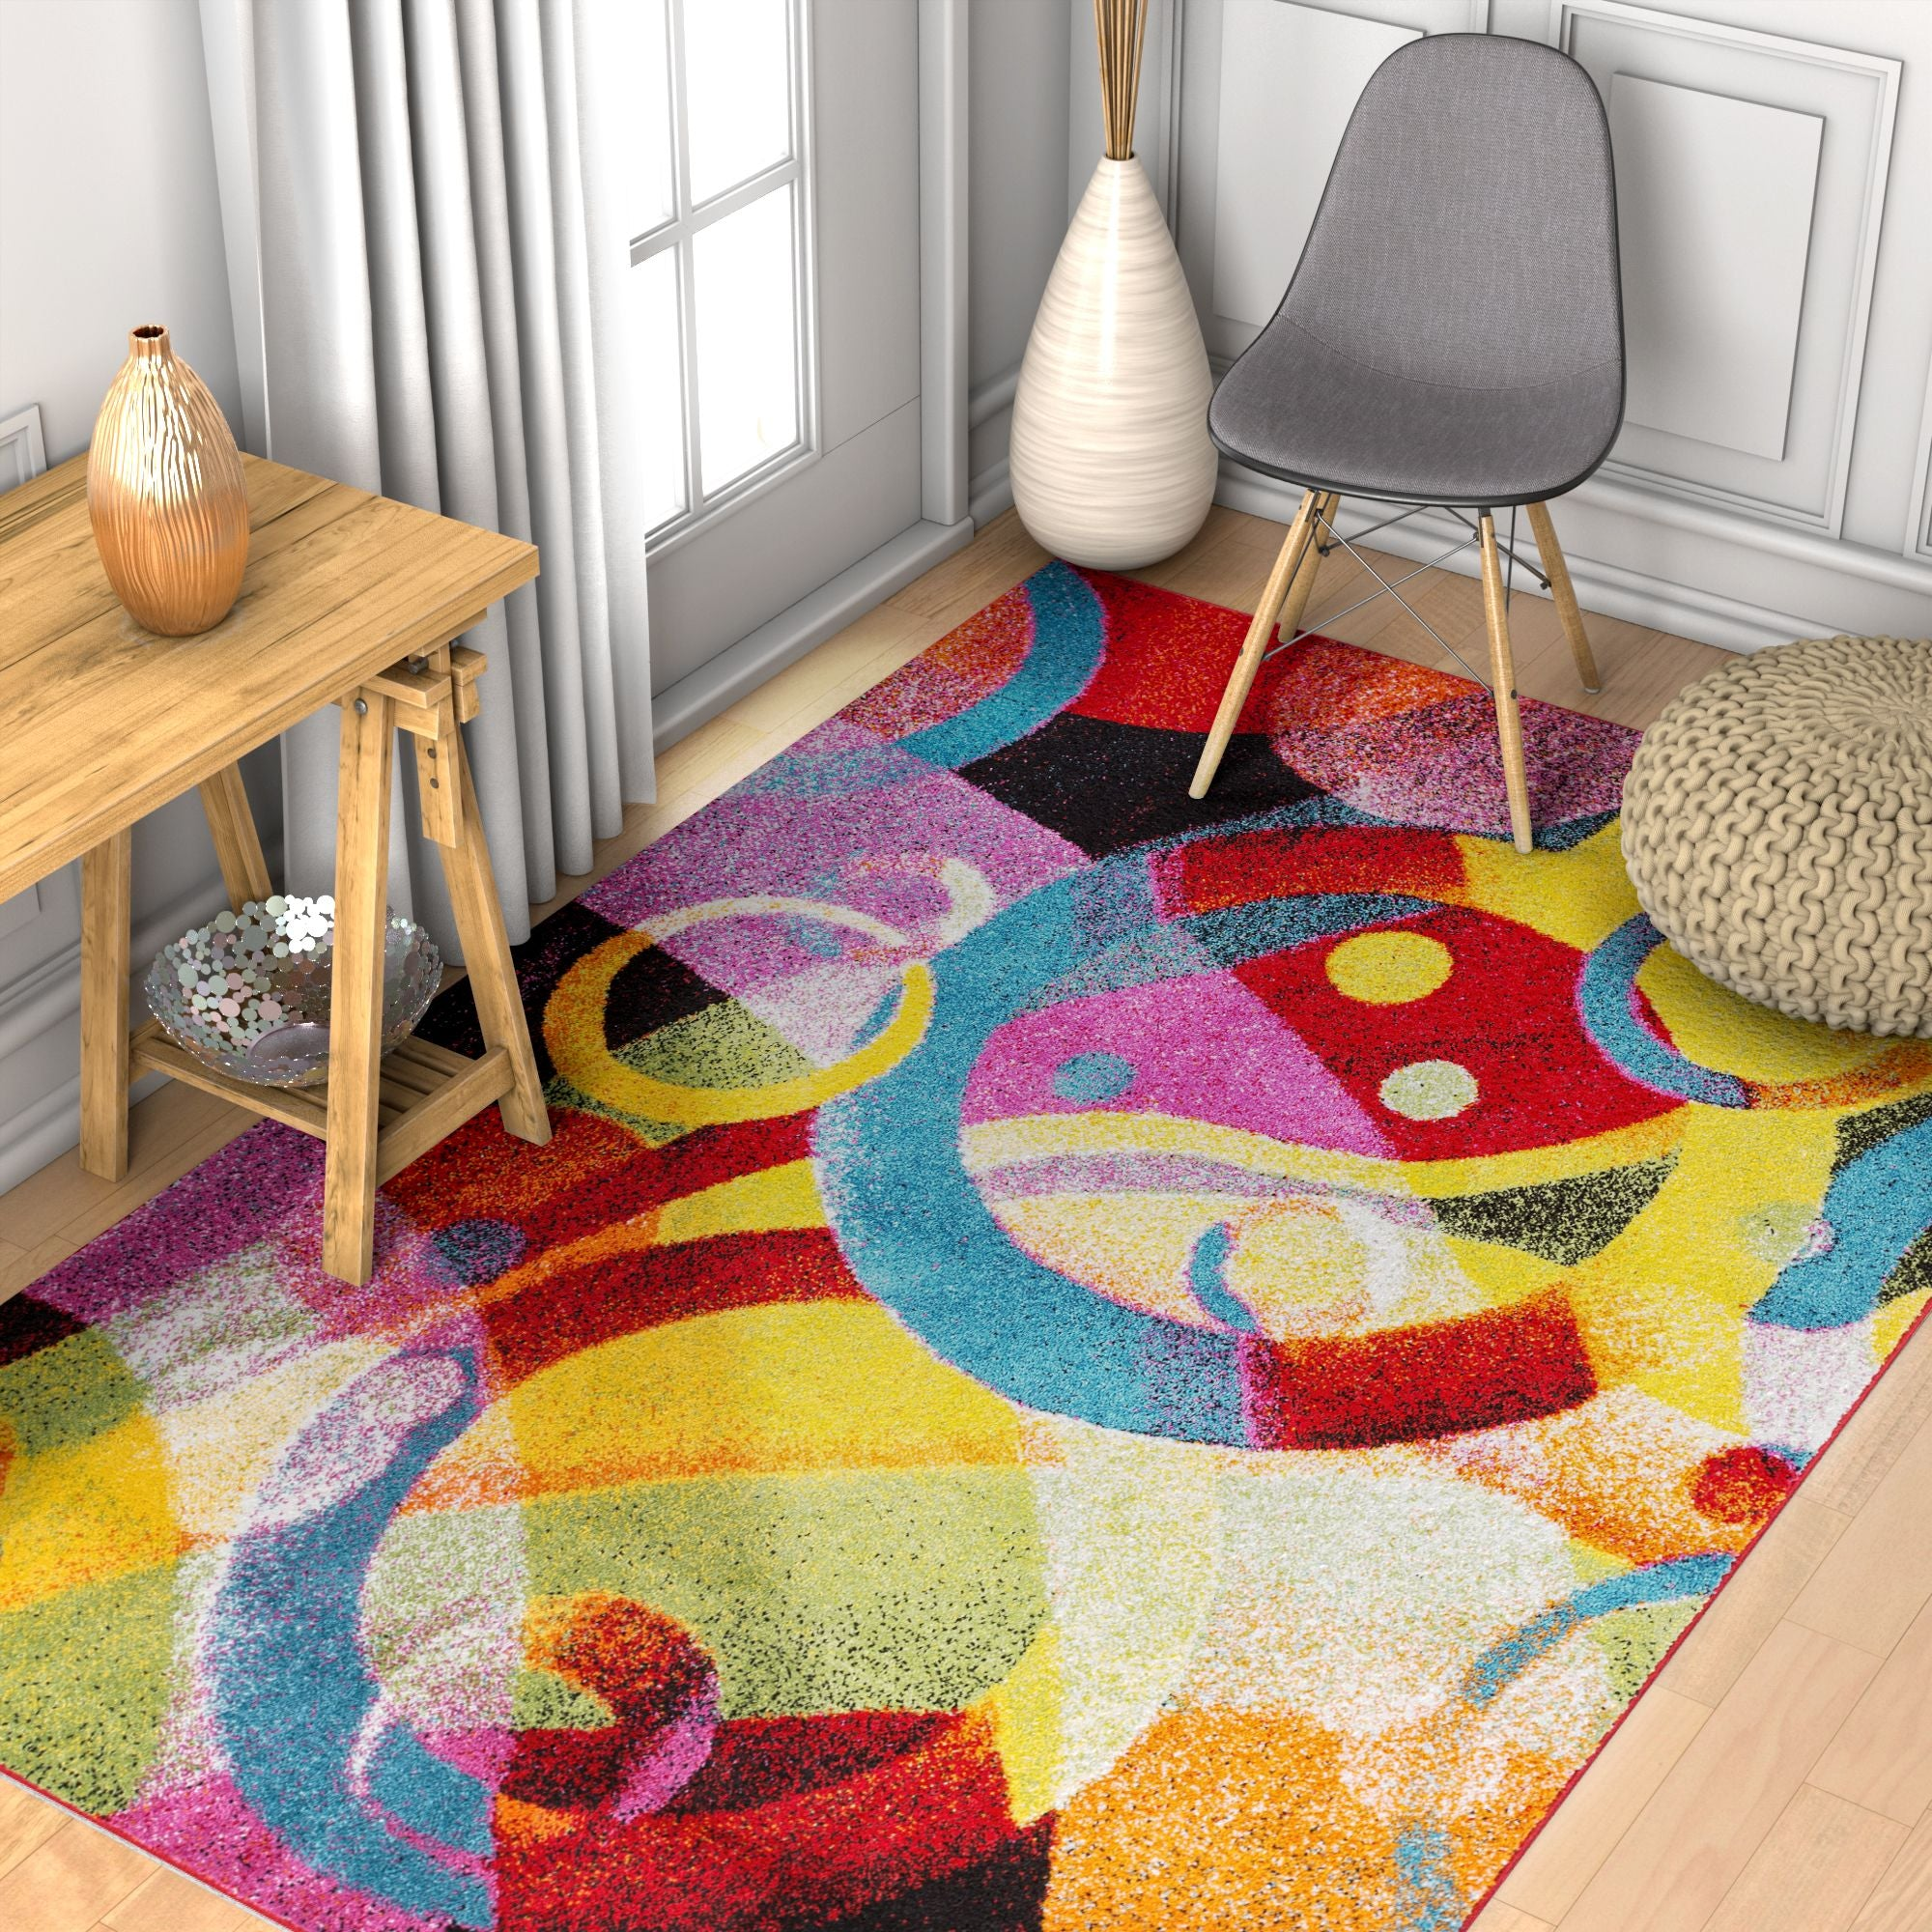 Bubble Bright Multi Circles Yellow Blue Red Abstract Geometric Lines Area  Rug Easy Clean Stain Fade Resistant Shed Free Modern Contemporary Brush  Stroke Painting Art Boxes Thick Soft Plush - RugLots.com